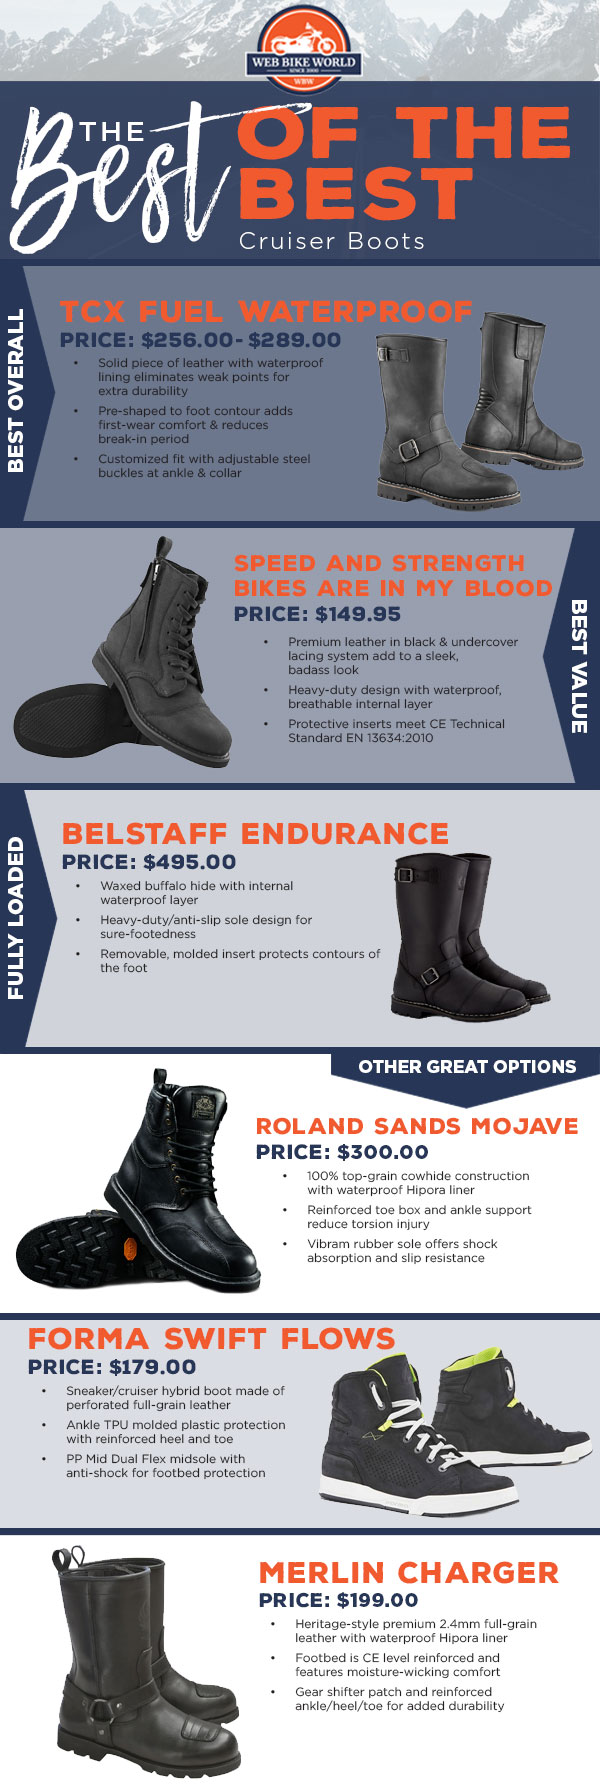 The Best Cruiser Boots Infographic 2019